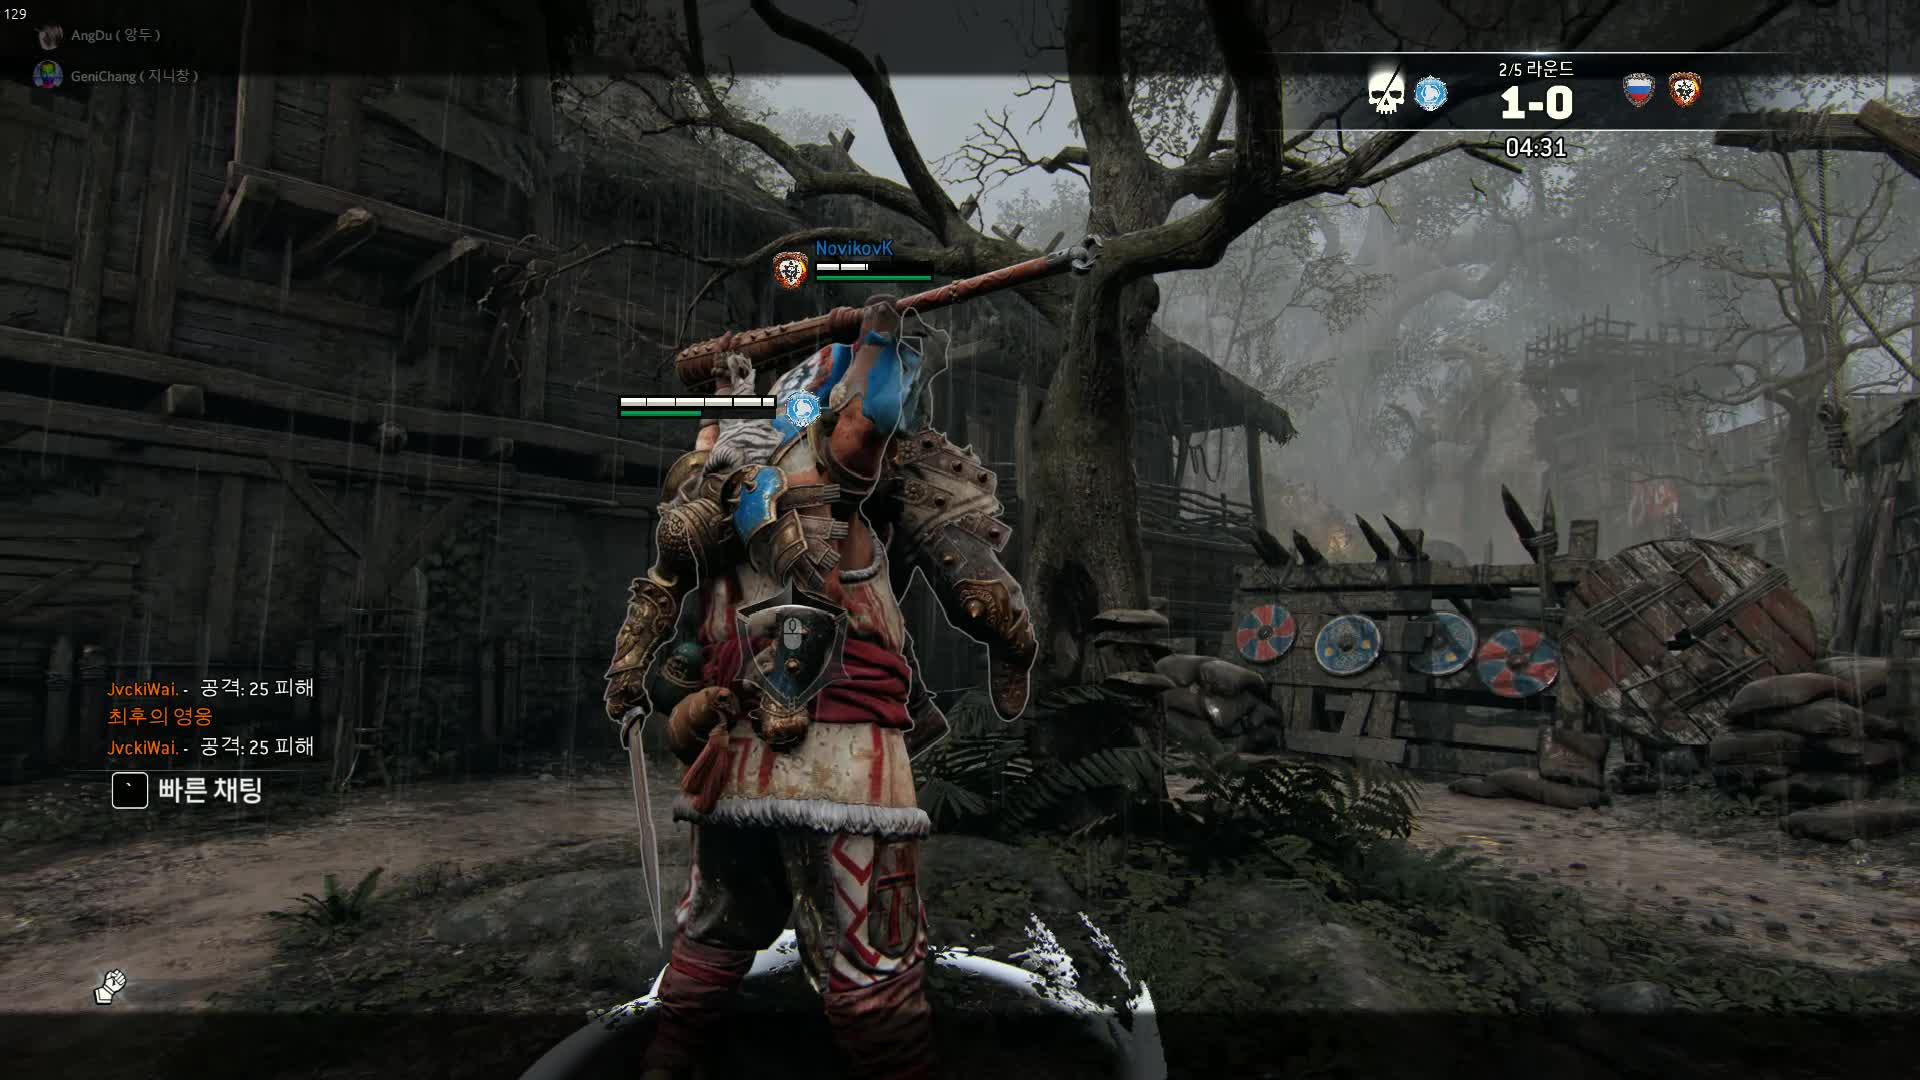 forhonor, For Honor 2019.03.27 - 18.13.50.04.DVR GIFs